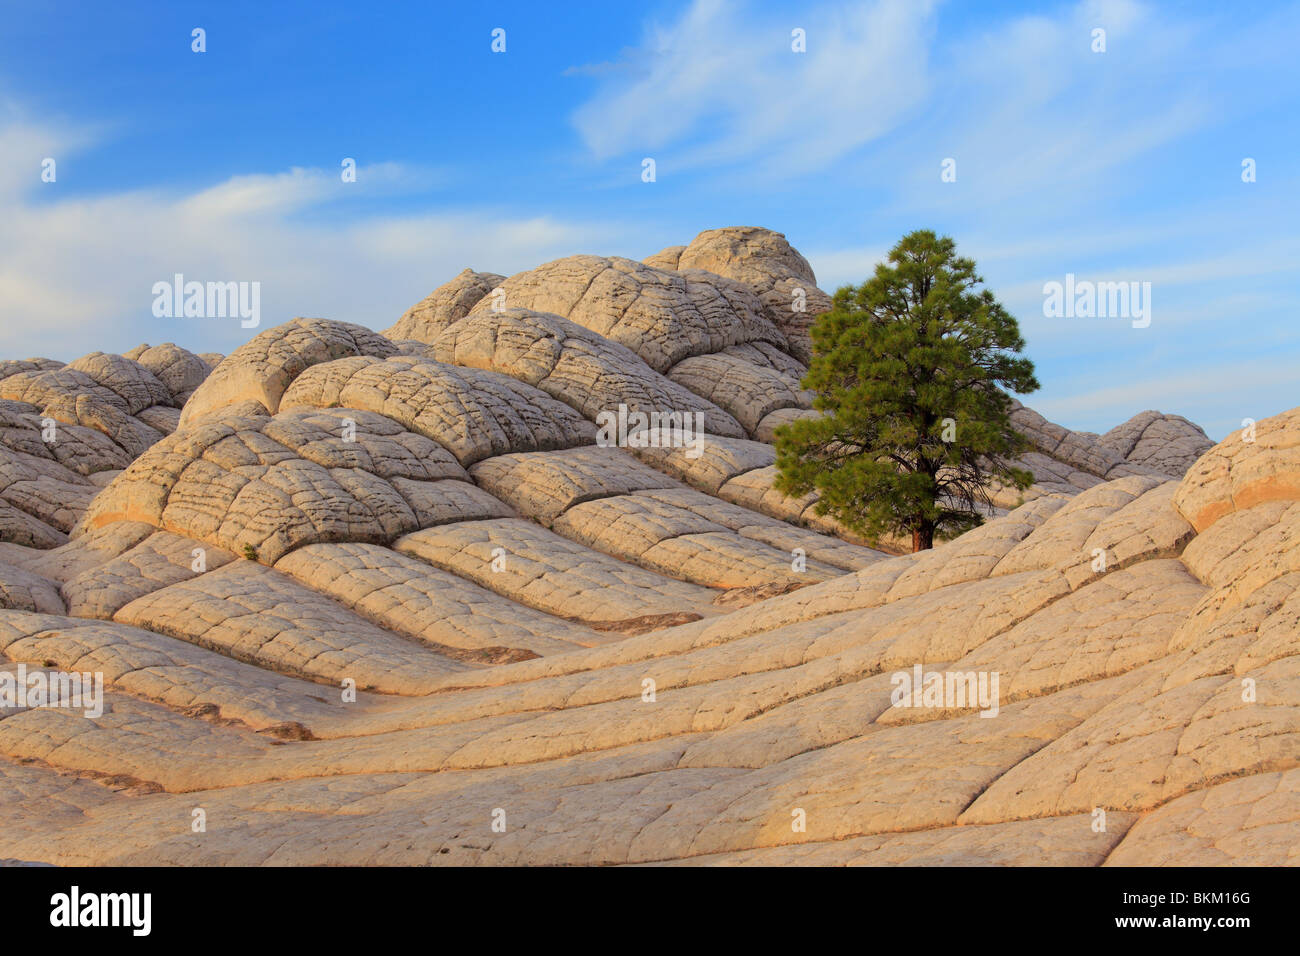 Tree among 'brain rock' sandstone formations in the White Pocket unit of the Vermilion Cliffs National Monument - Stock Image